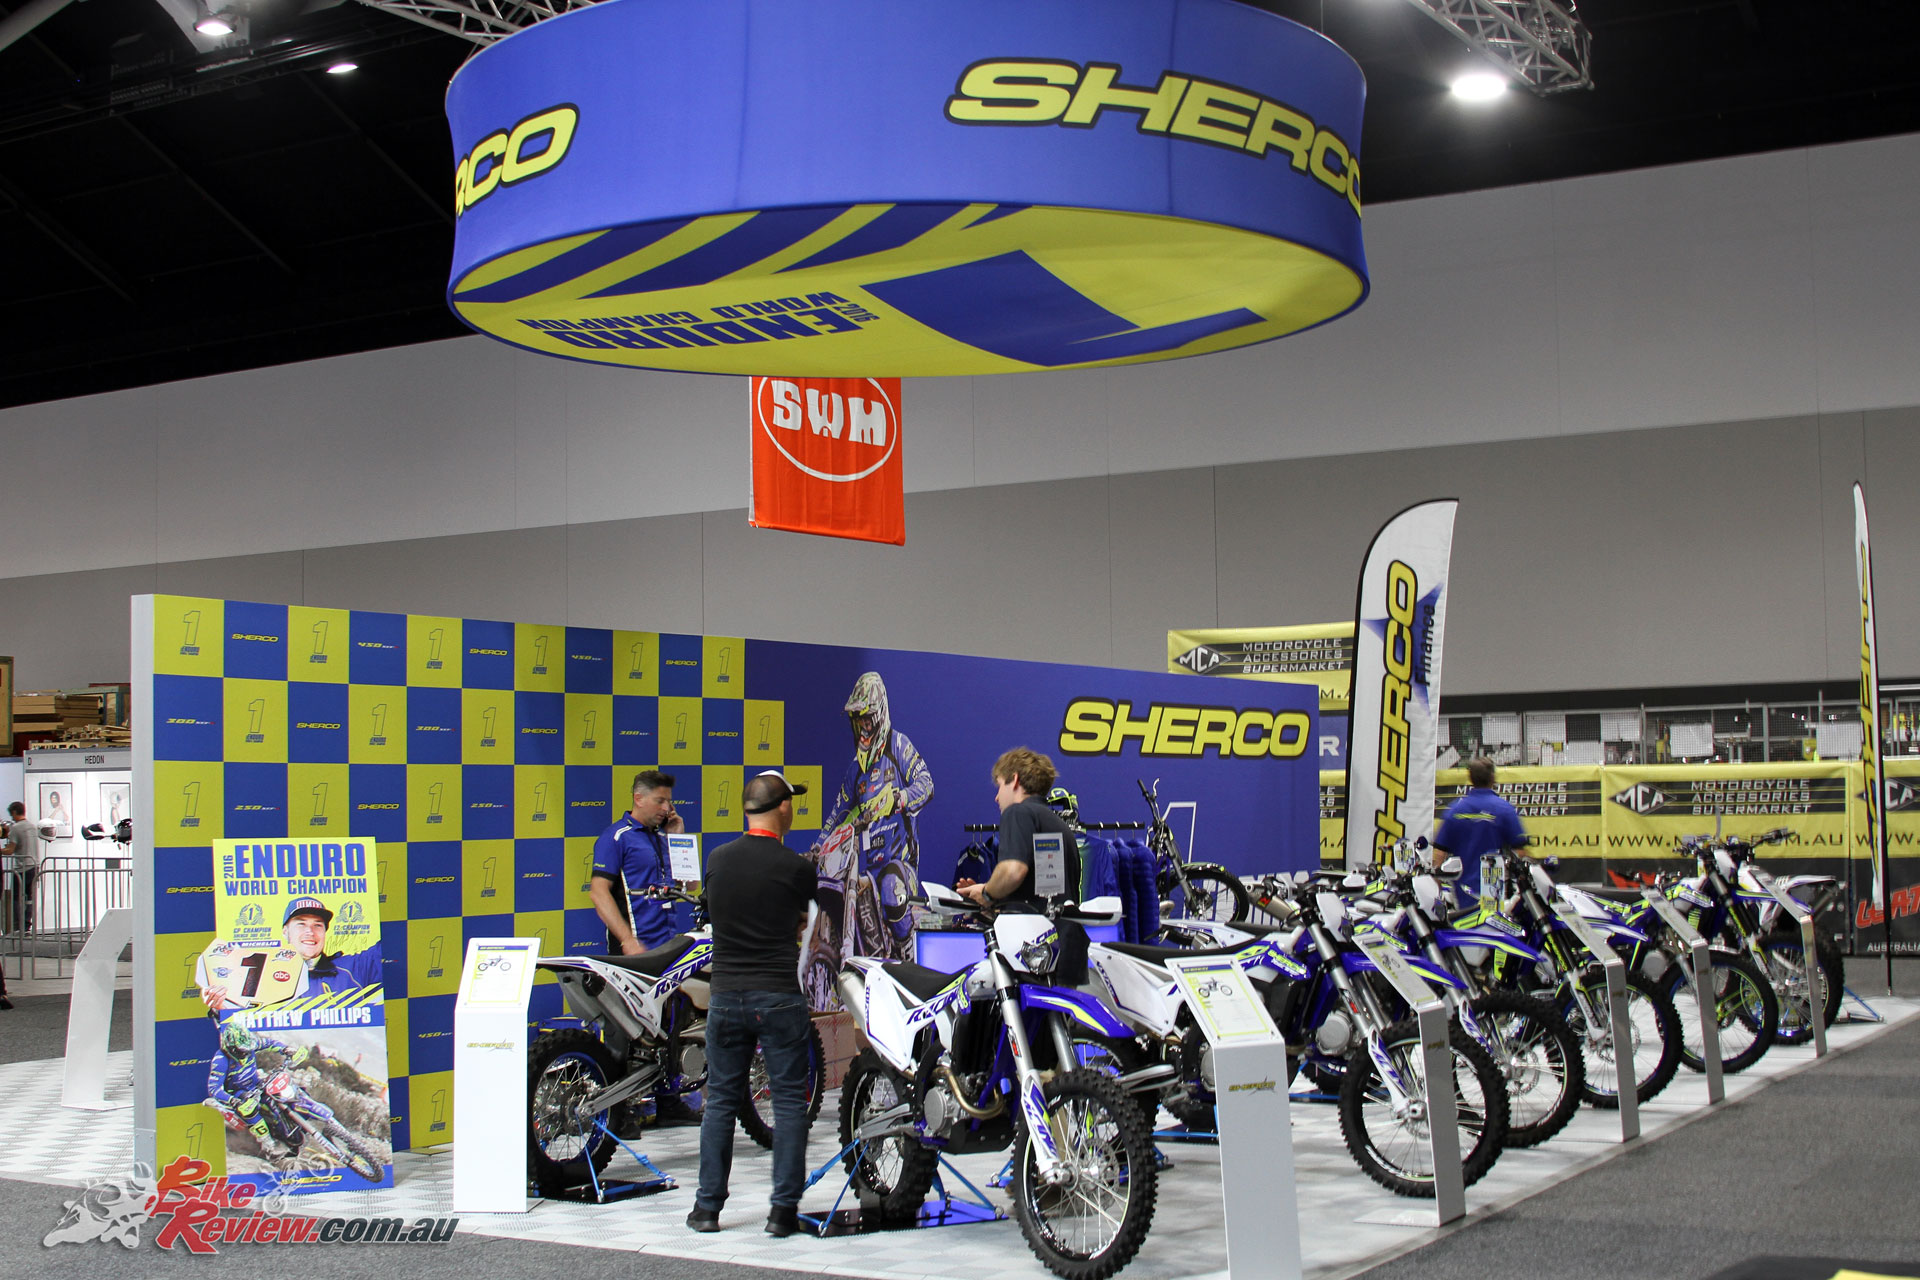 Sherco introduced their 125 SE-R